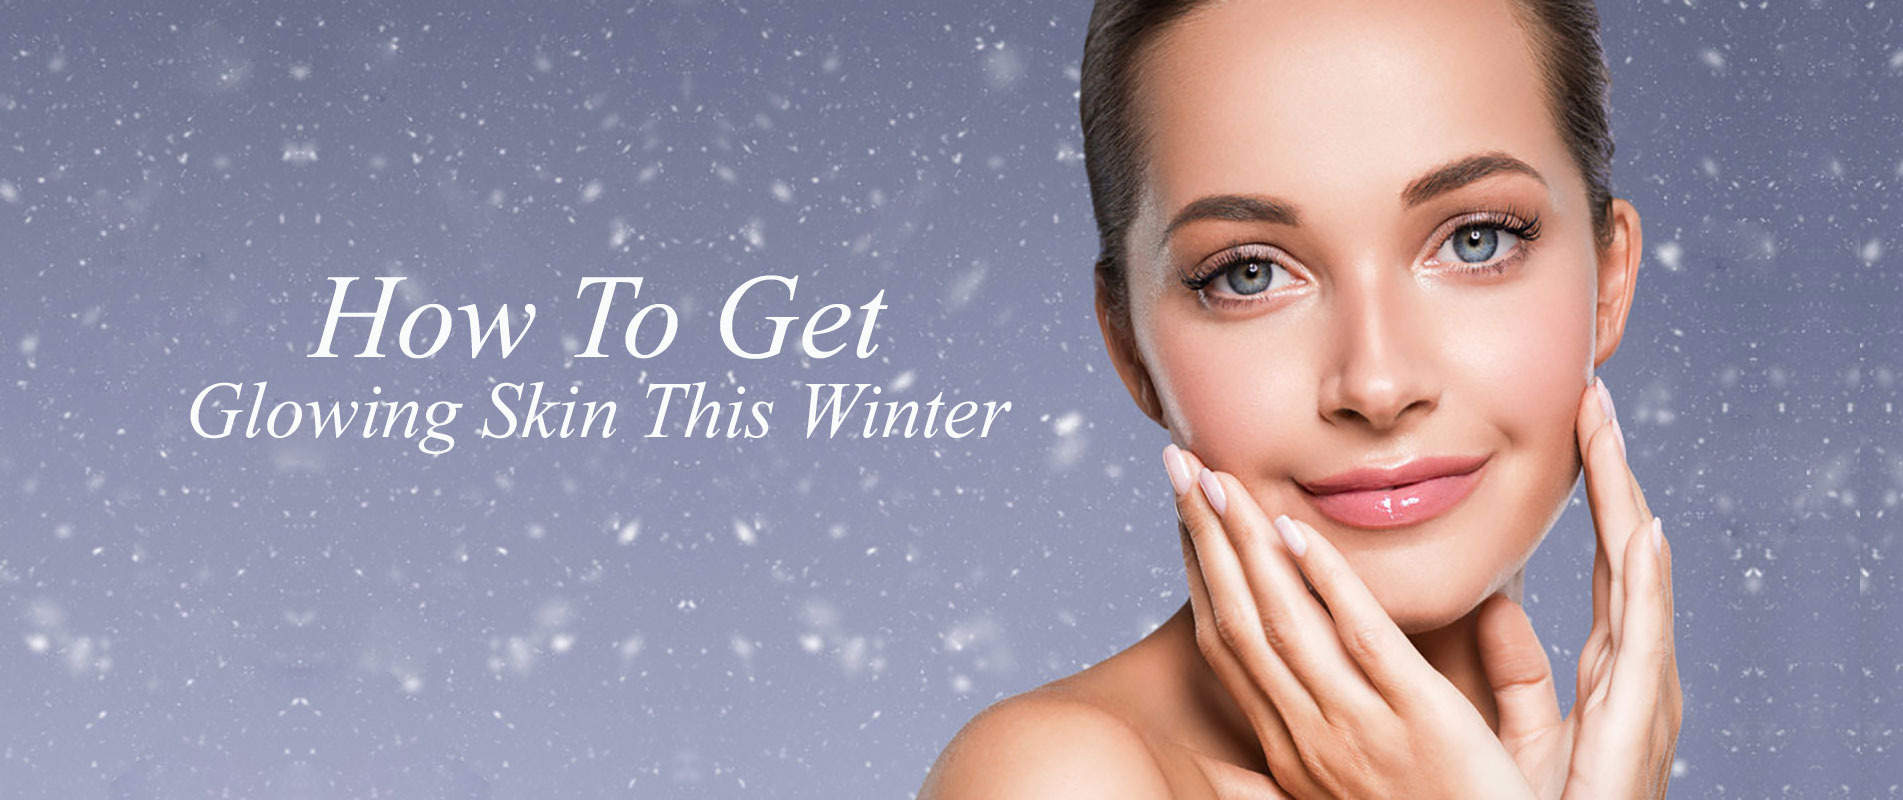 How To Get Glowing Skin This Winter banner 2